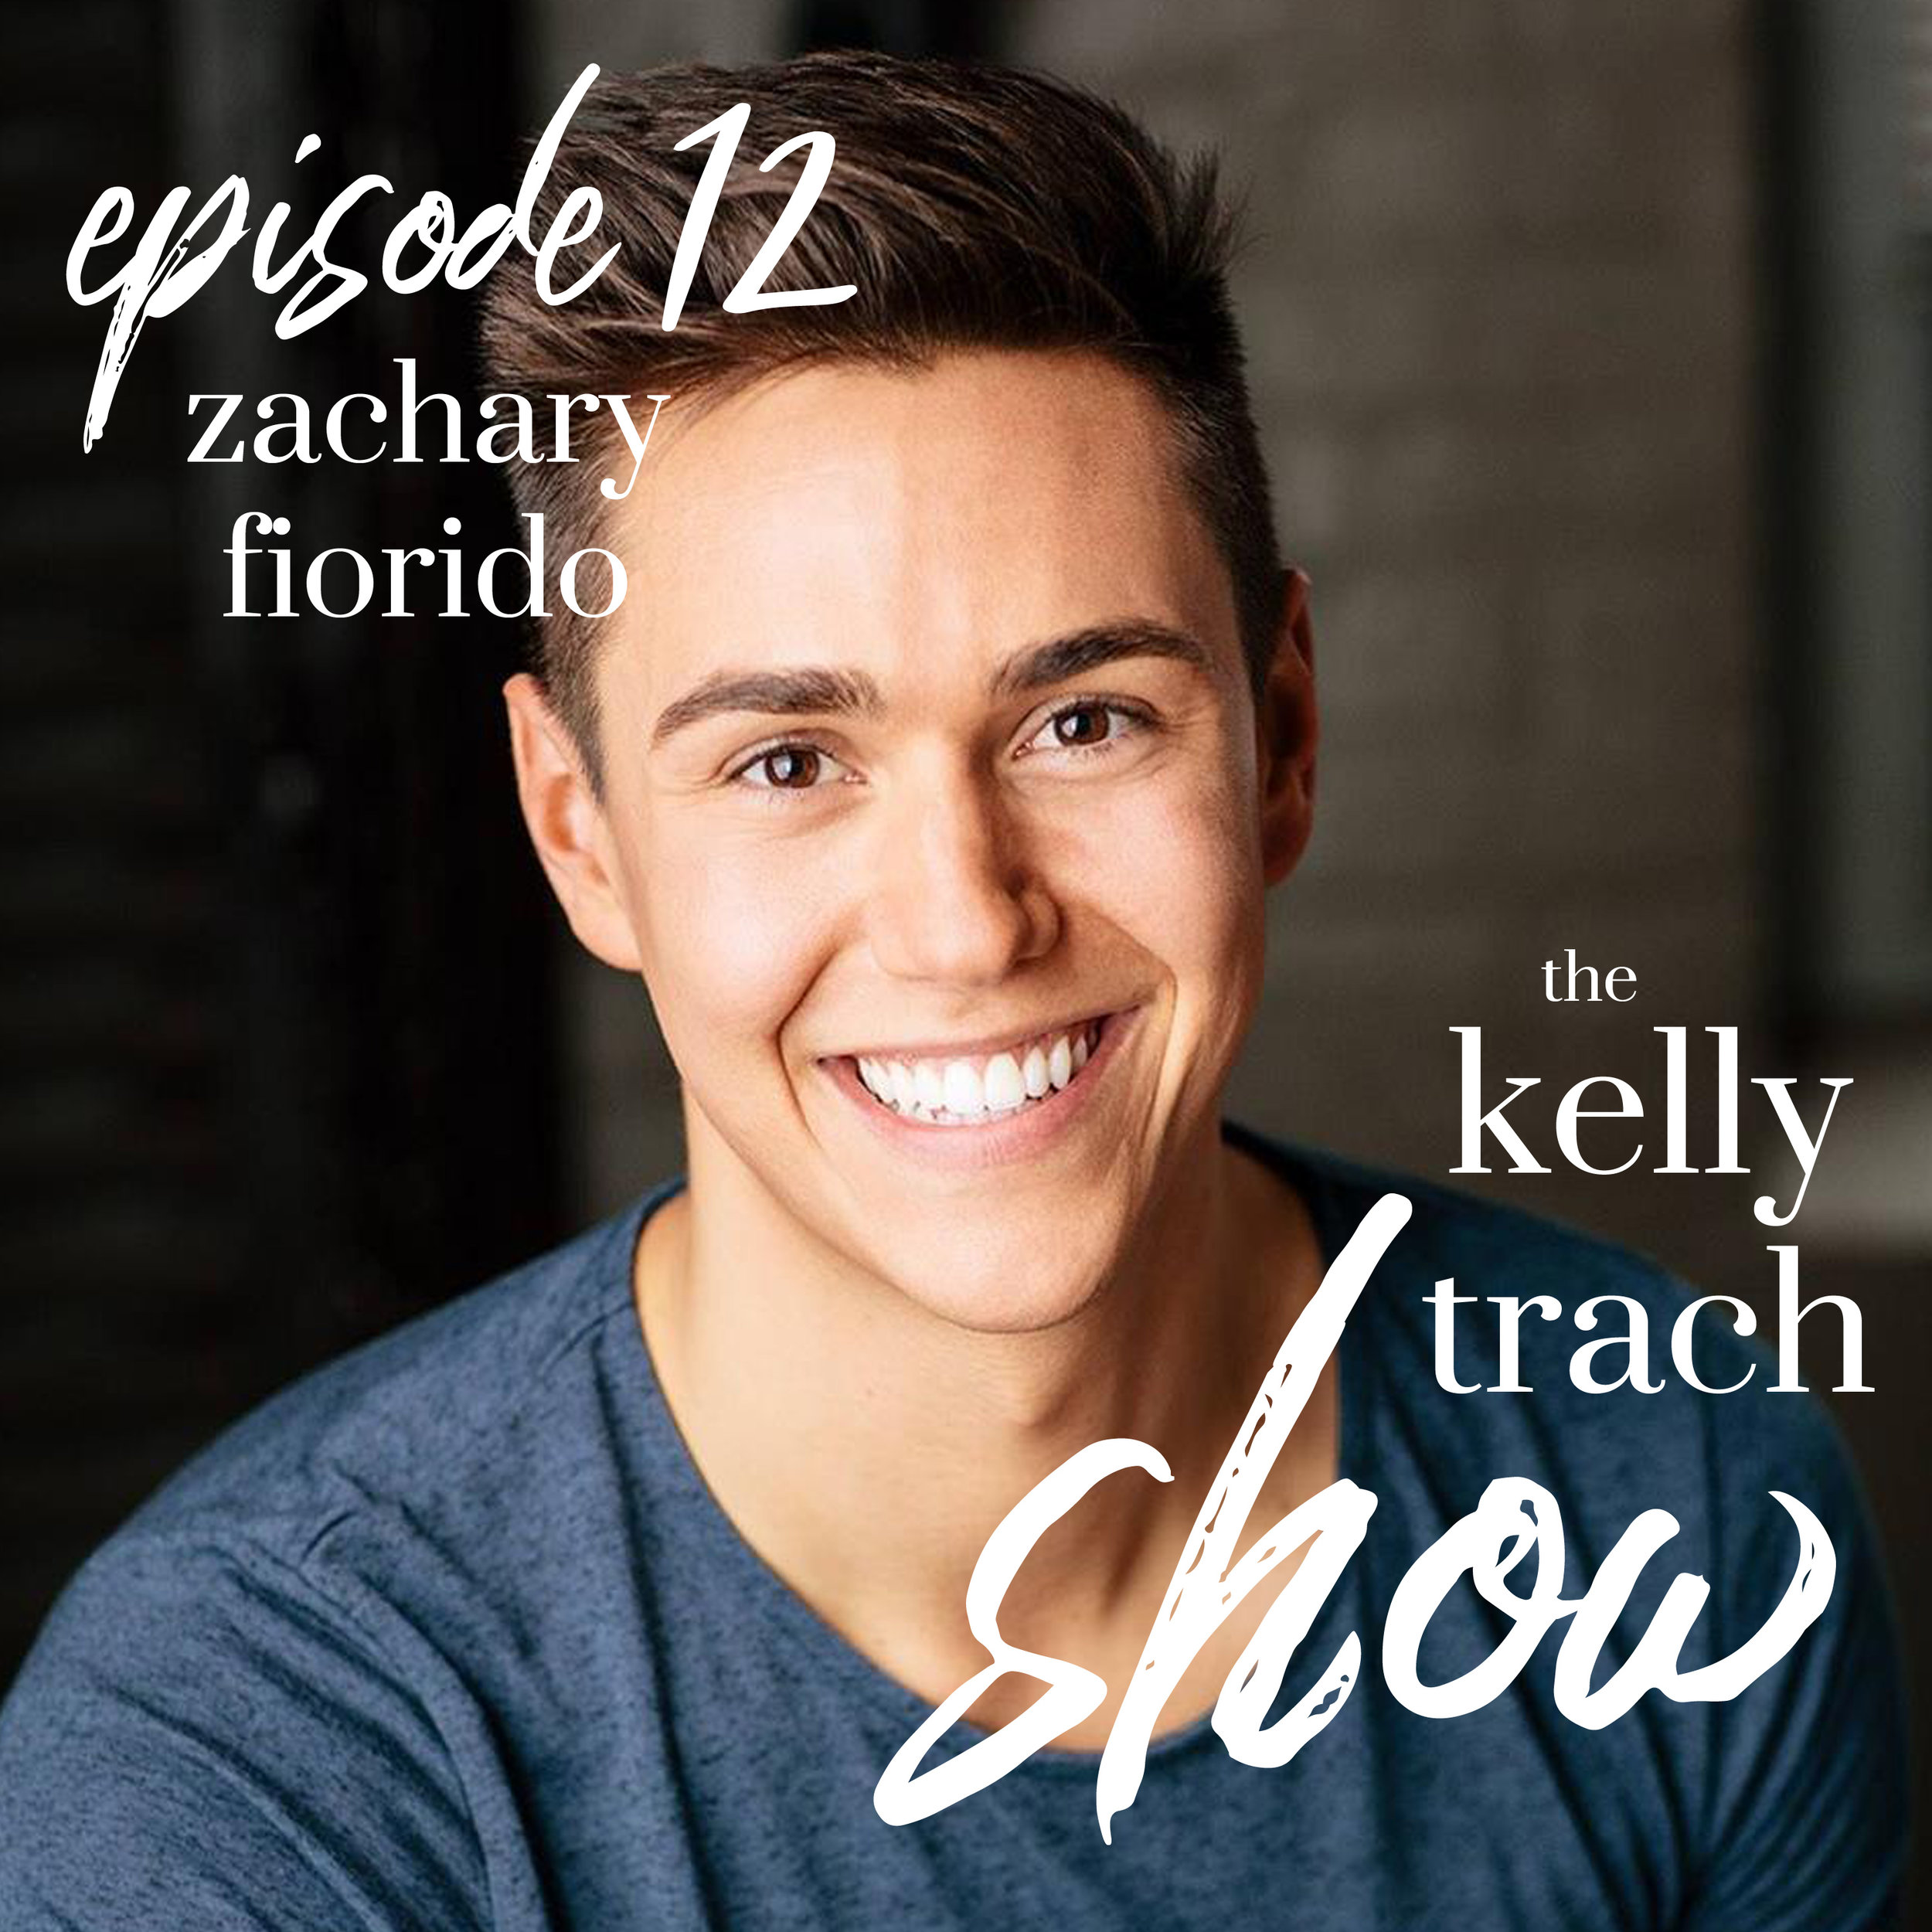 12 - Zachary Fiorido - The Kelly Trach Show.jpg